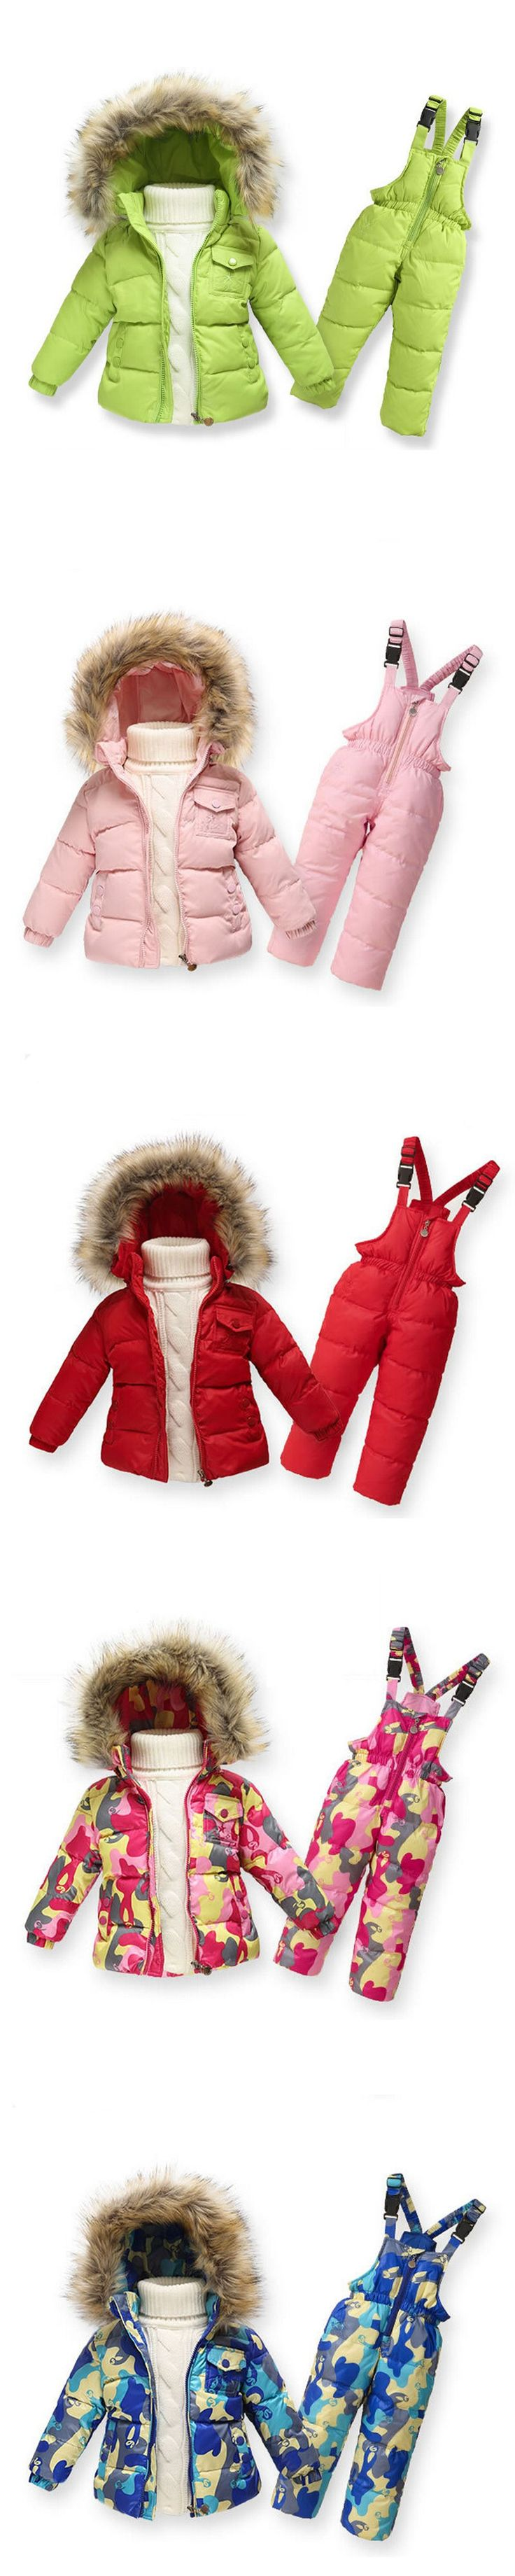 Children Winter Clothing set 2016 Fashion Boys Ski Suit Girl Down Jacket Coat + Jumpsuit Set Kids Clothes For Baby Boy Girl Suit